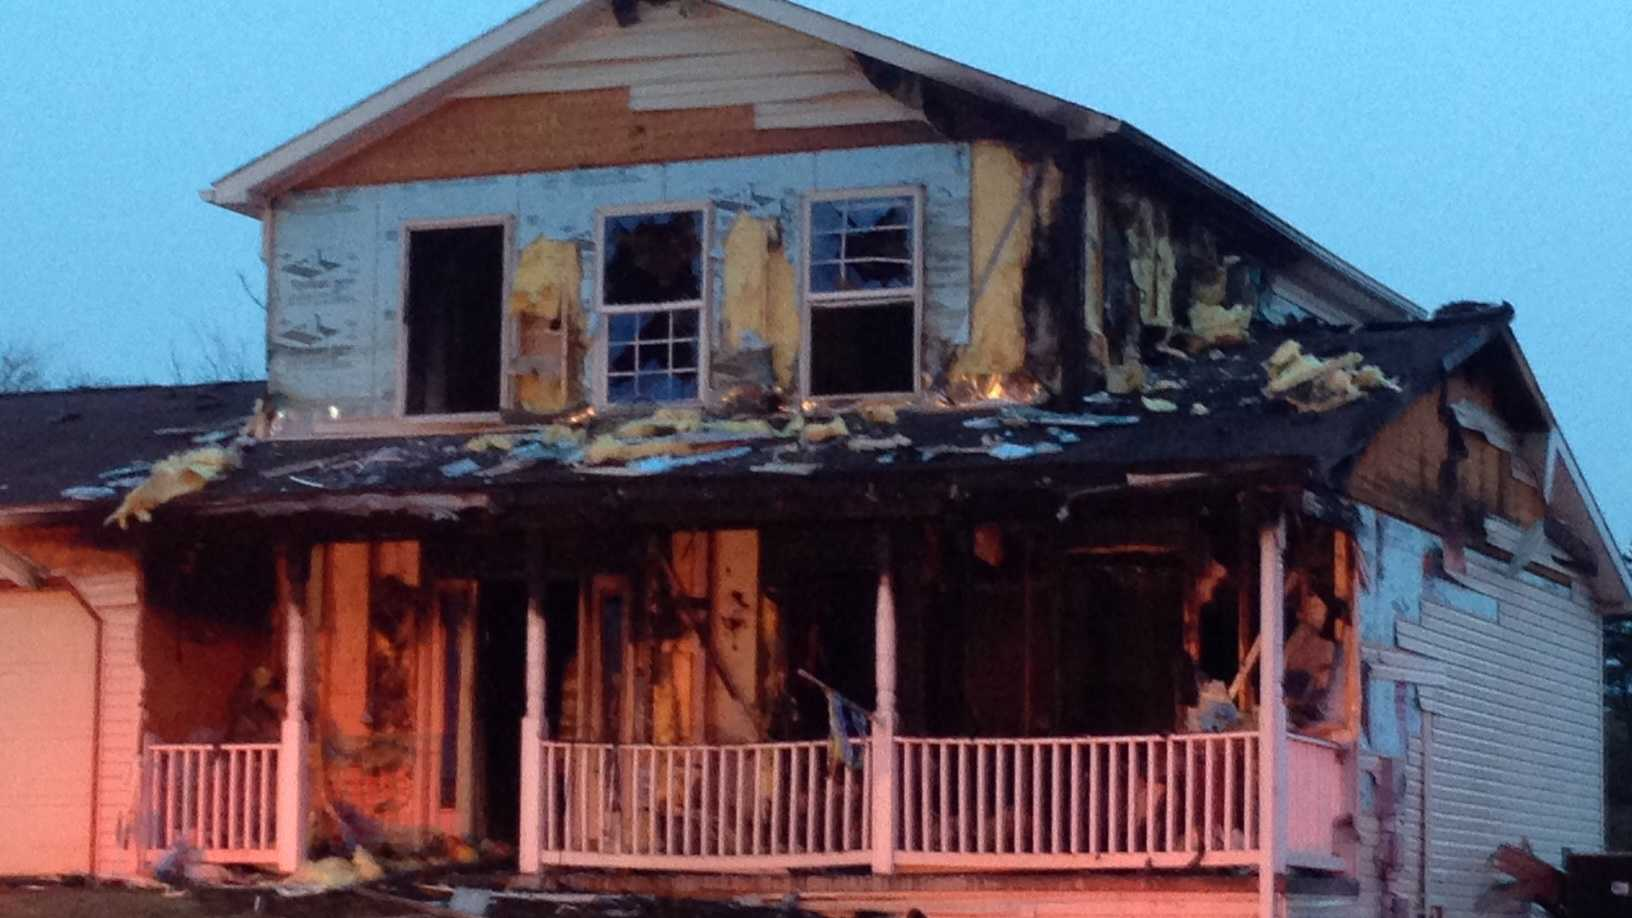 Deadly fire in Dauphin County